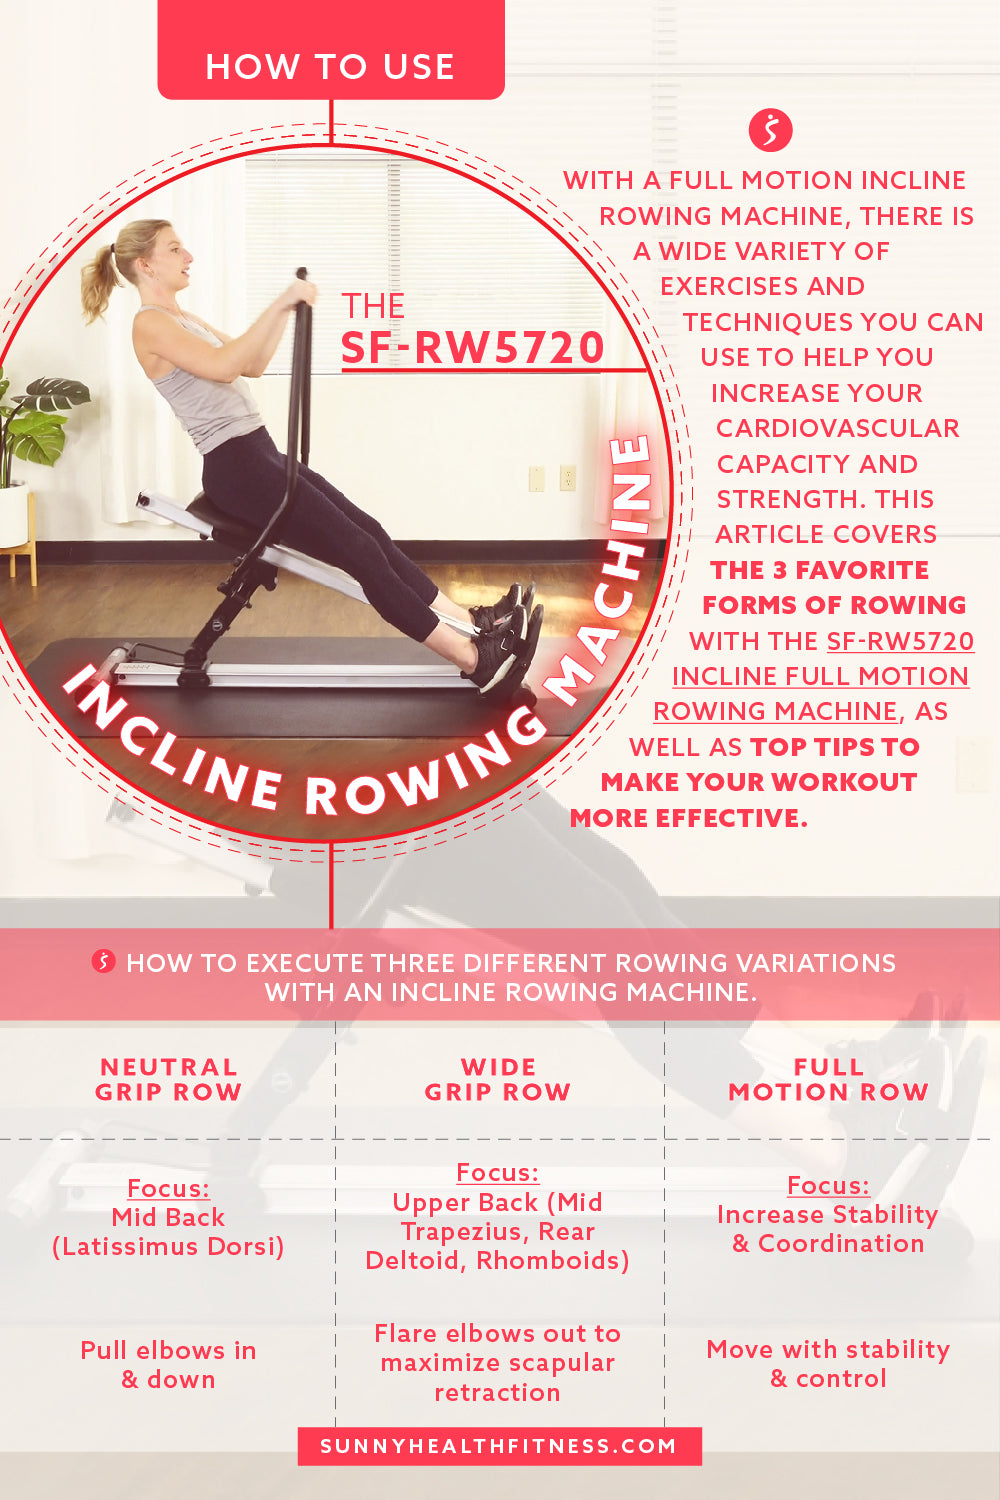 Use the SF-RW5720 Incline Rowing Machine Infographic